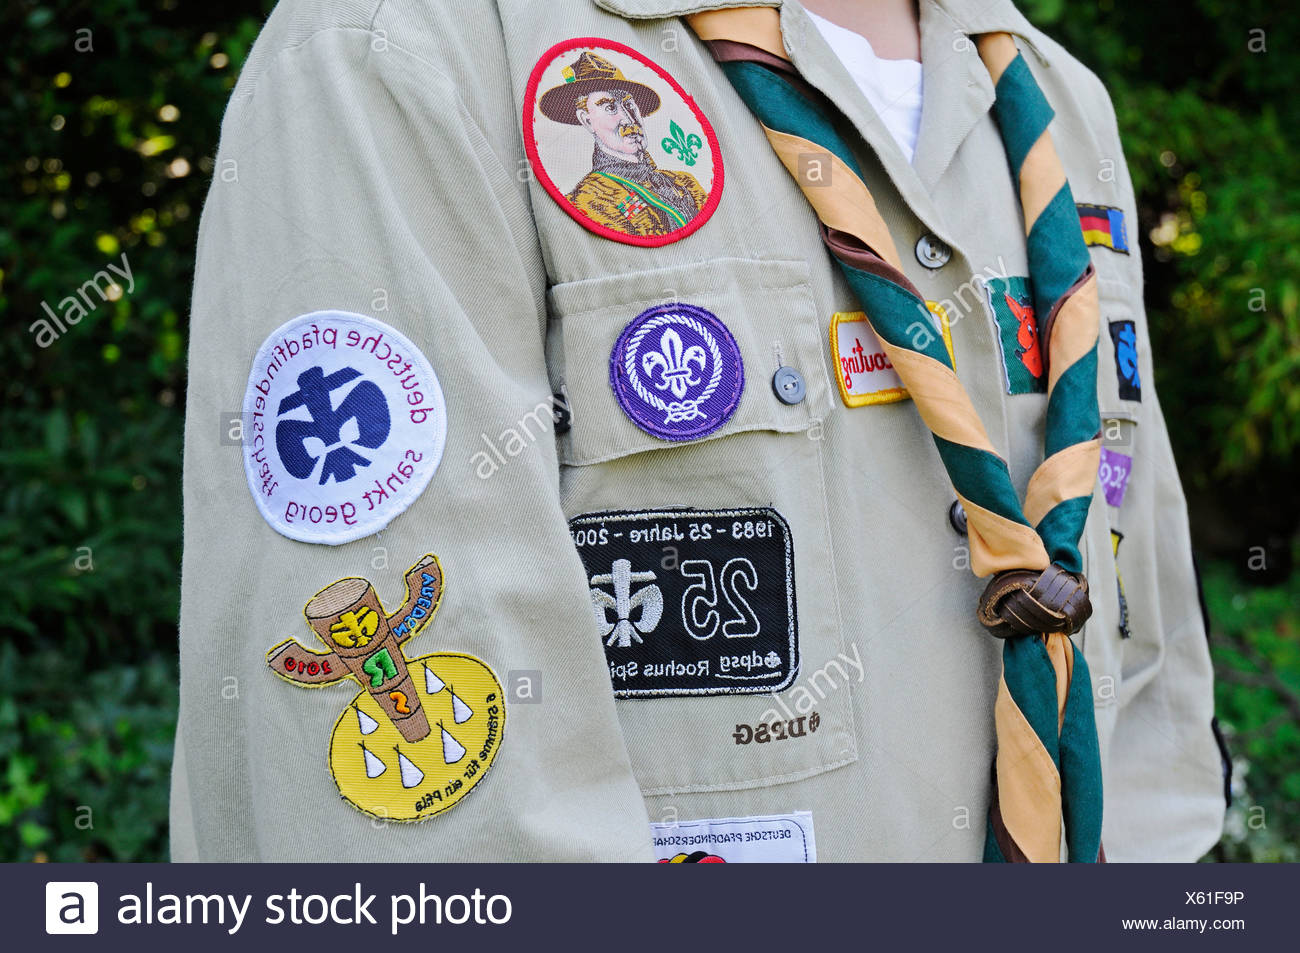 Scouts uniform with badges, neckerchief, Germany, Europe - Stock Image